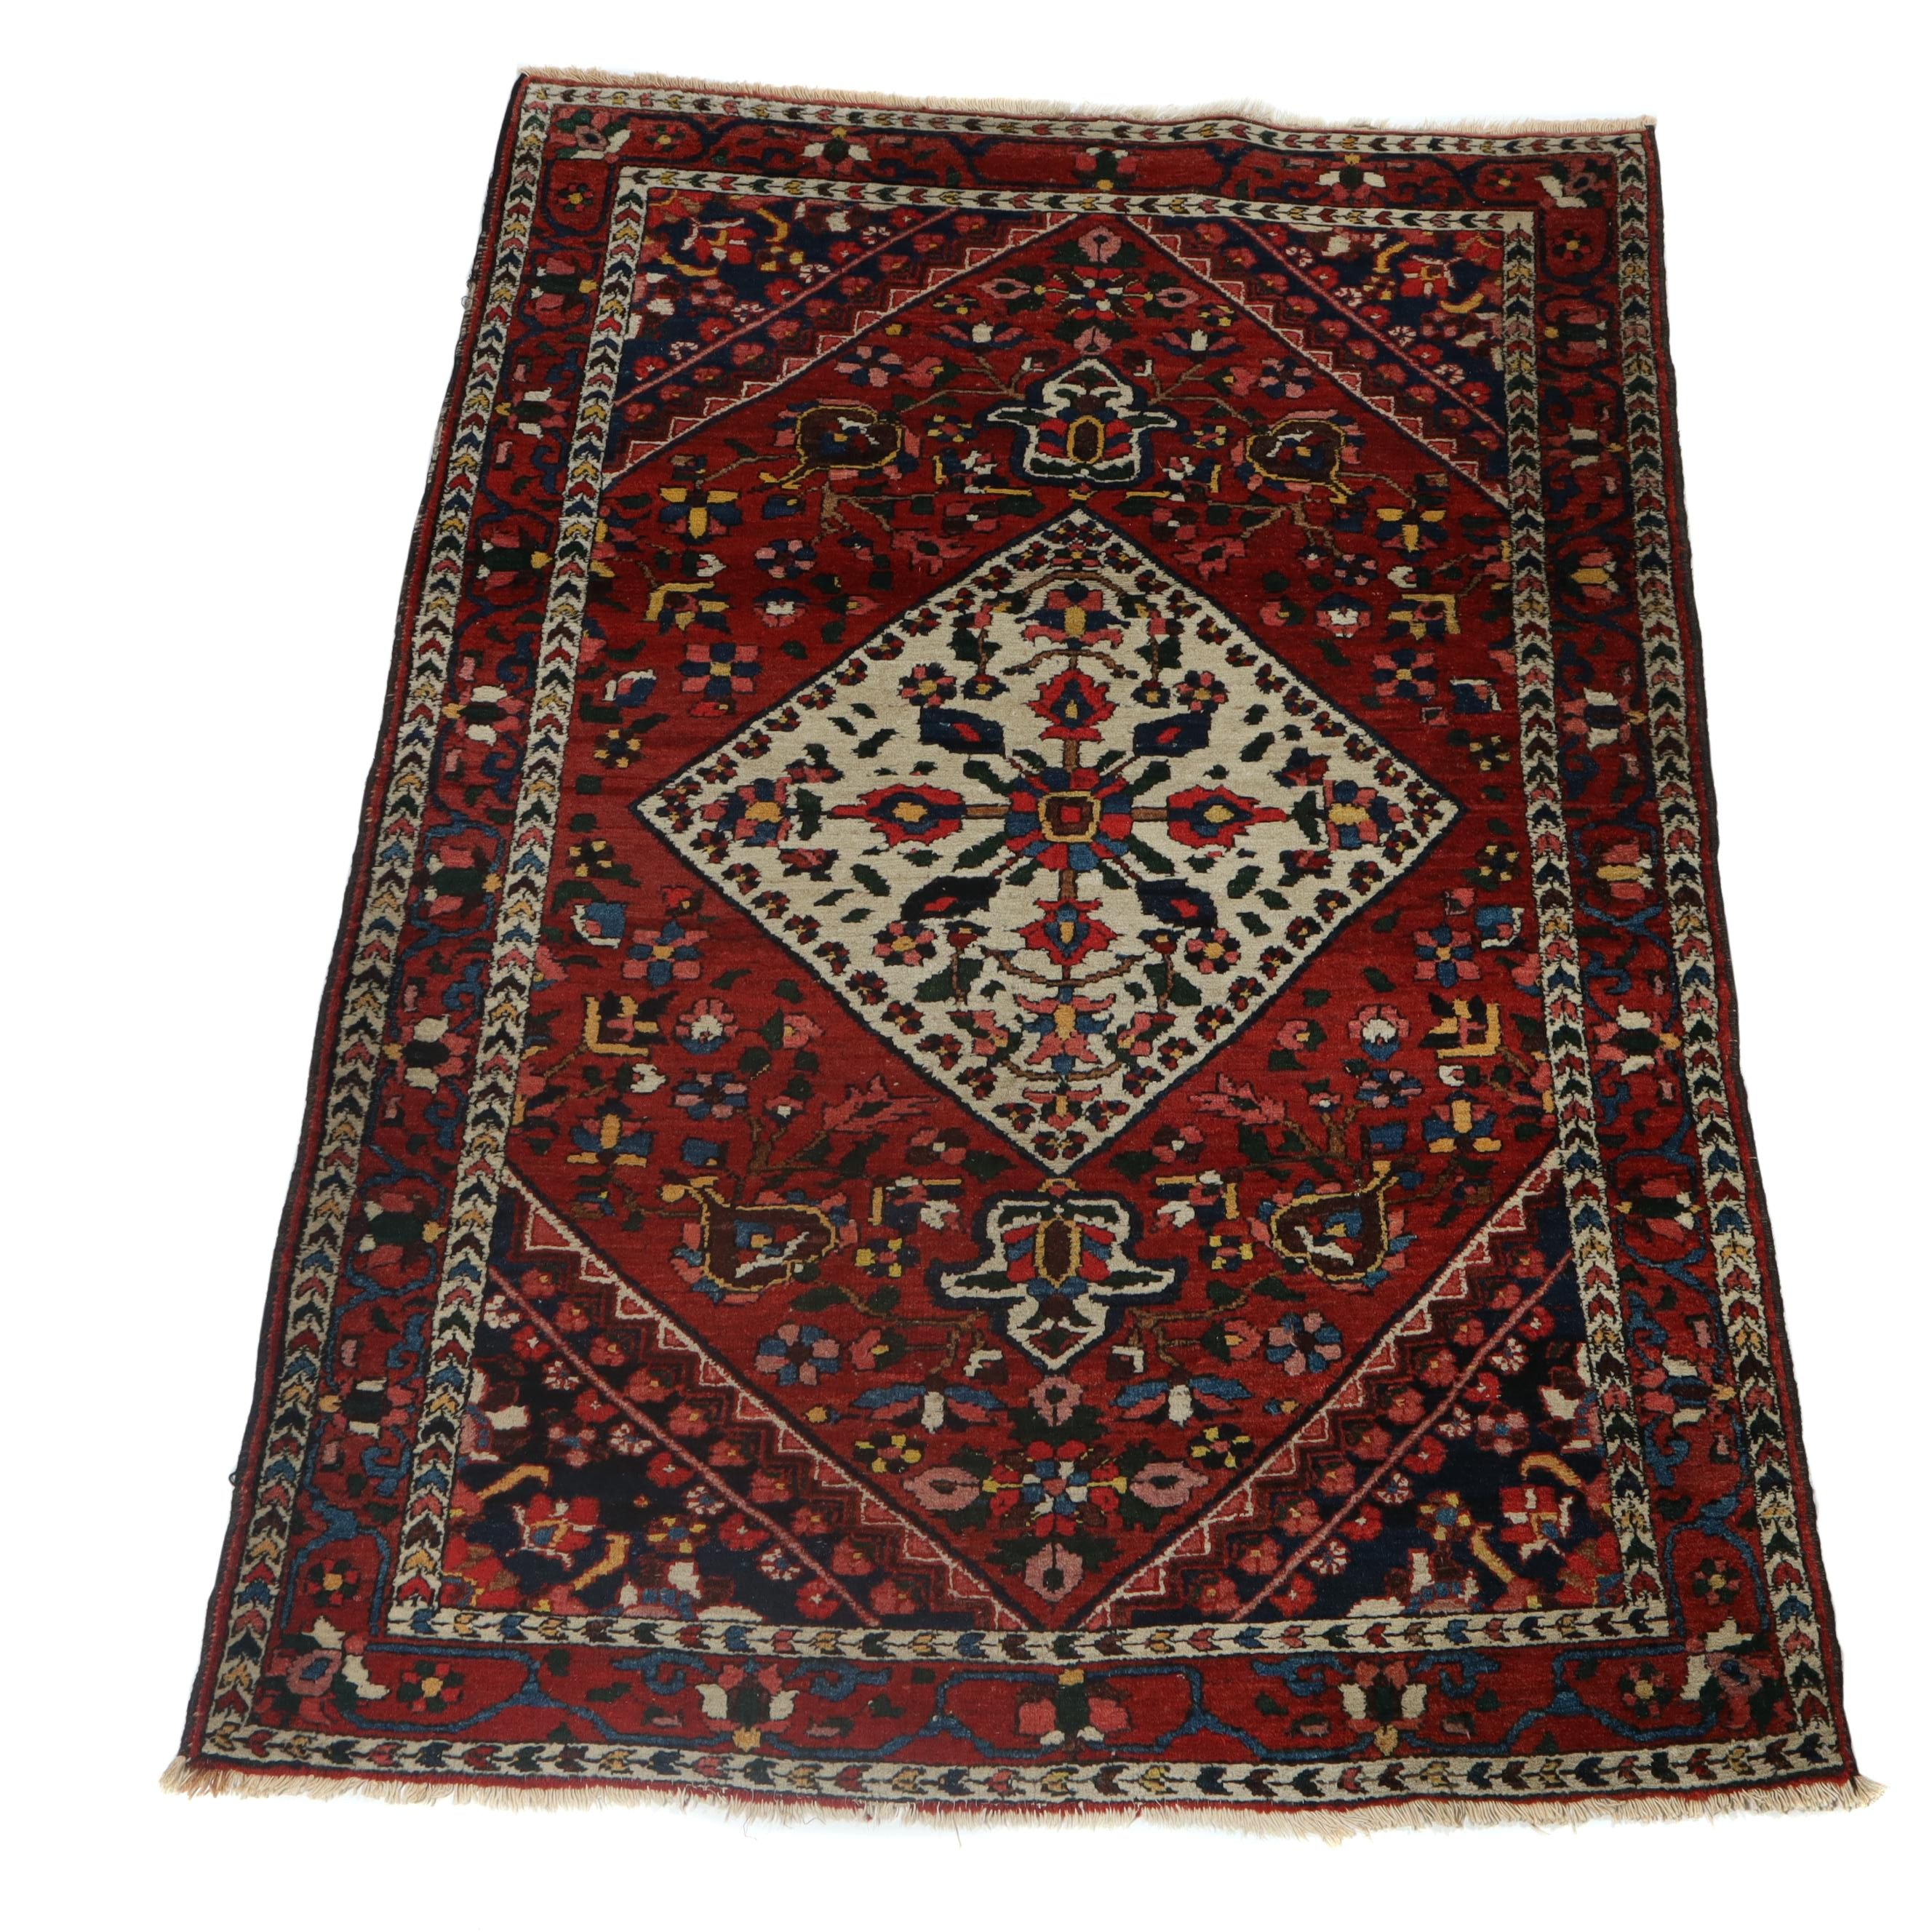 4.4' x 6.3' Hand-Knotted Persian Bakhtiari Wool Rug, Circa 1920s